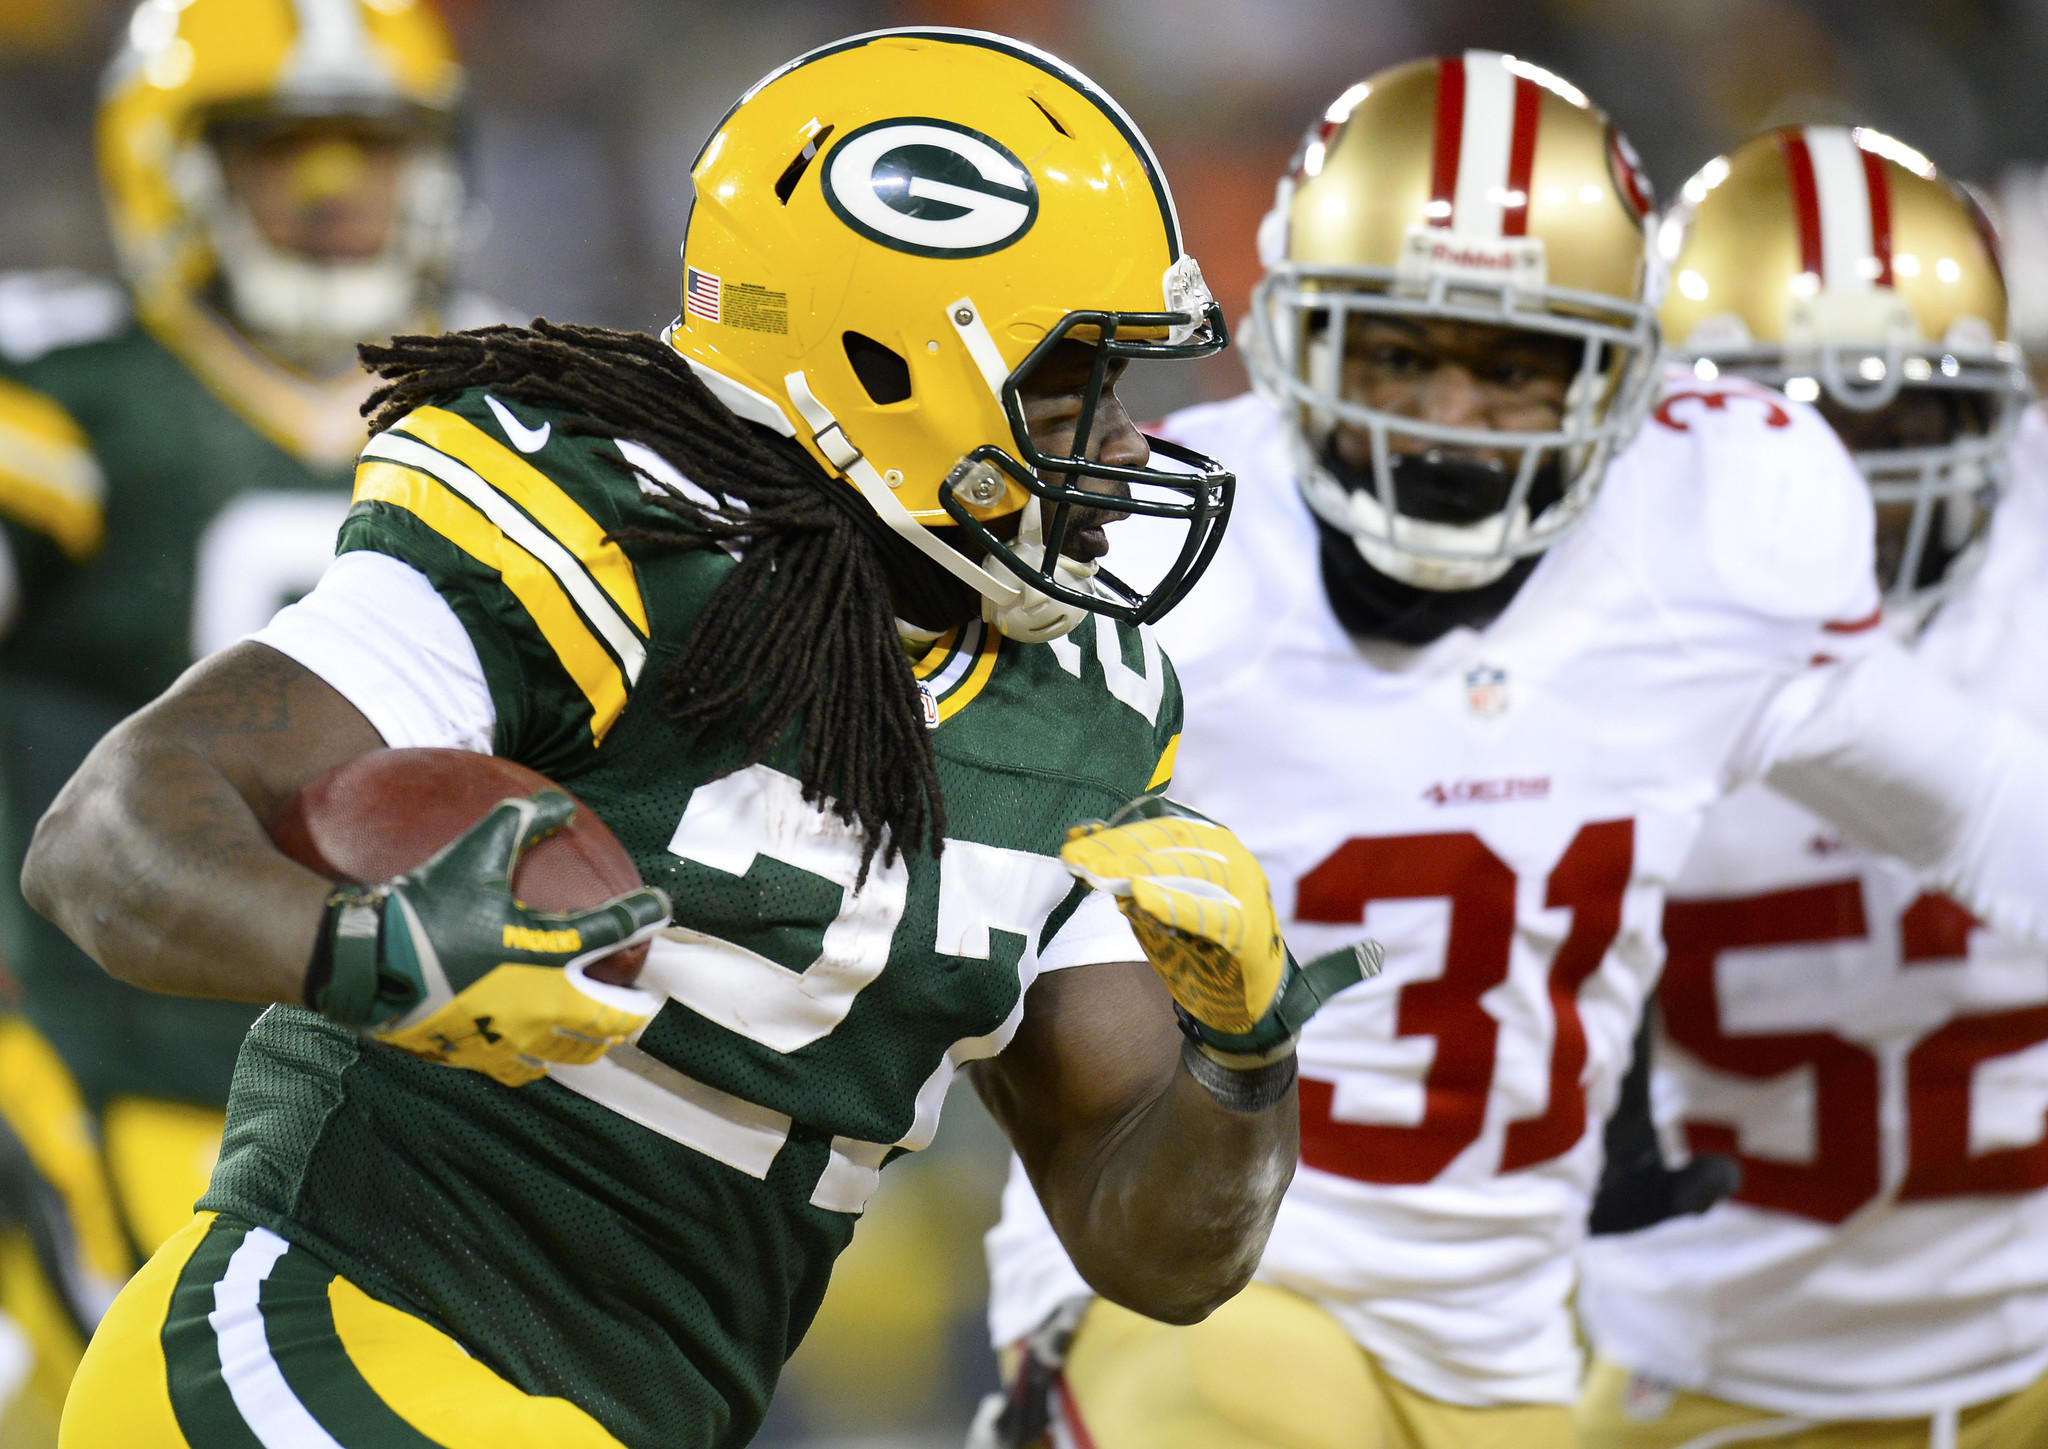 Green Bay Packers running back Eddie Lacy (27) carries the ball in front of San Francisco 49ers strong safety Donte Whitner (31) during the second quarter of the 2013 NFC wild card playoff football game at Lambeau Field.